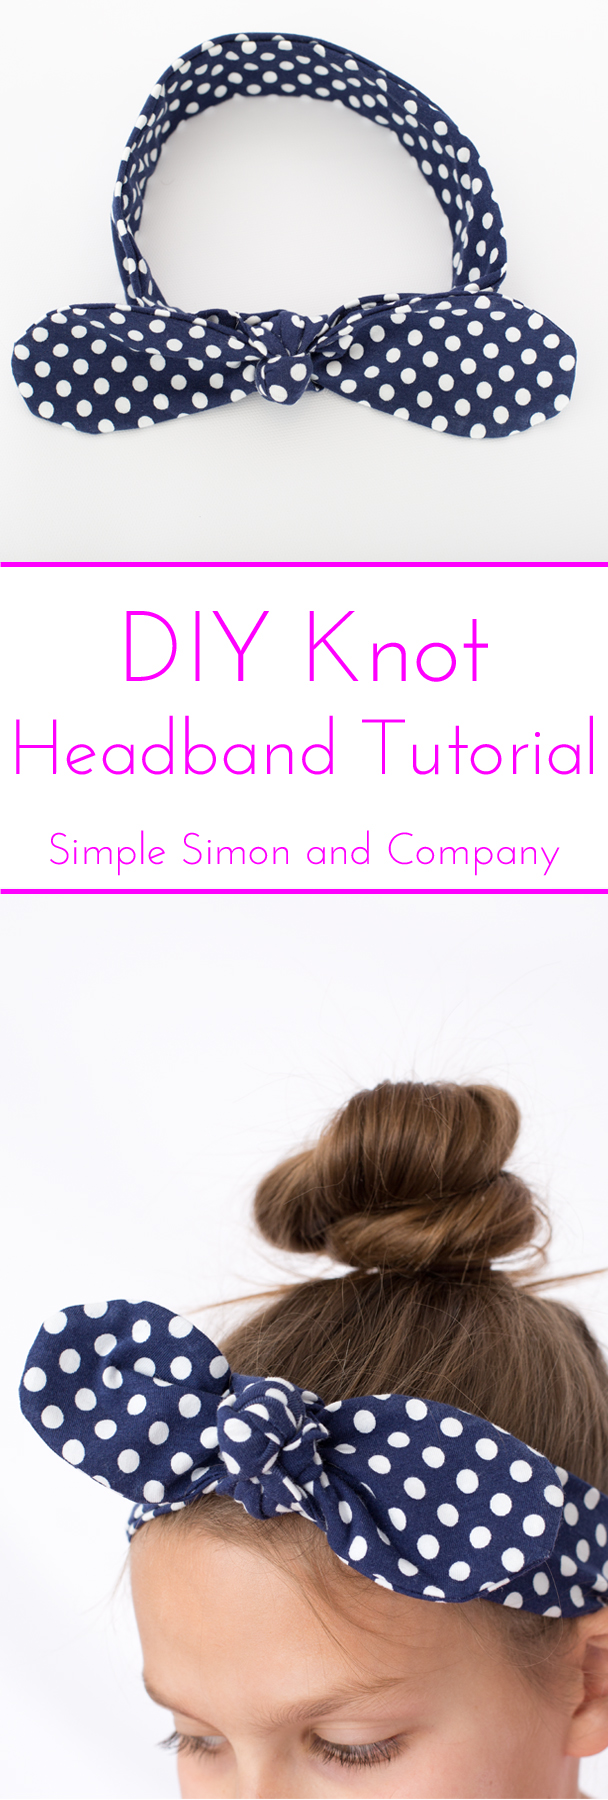 DIY knot Headband Tutorial Simple Simon